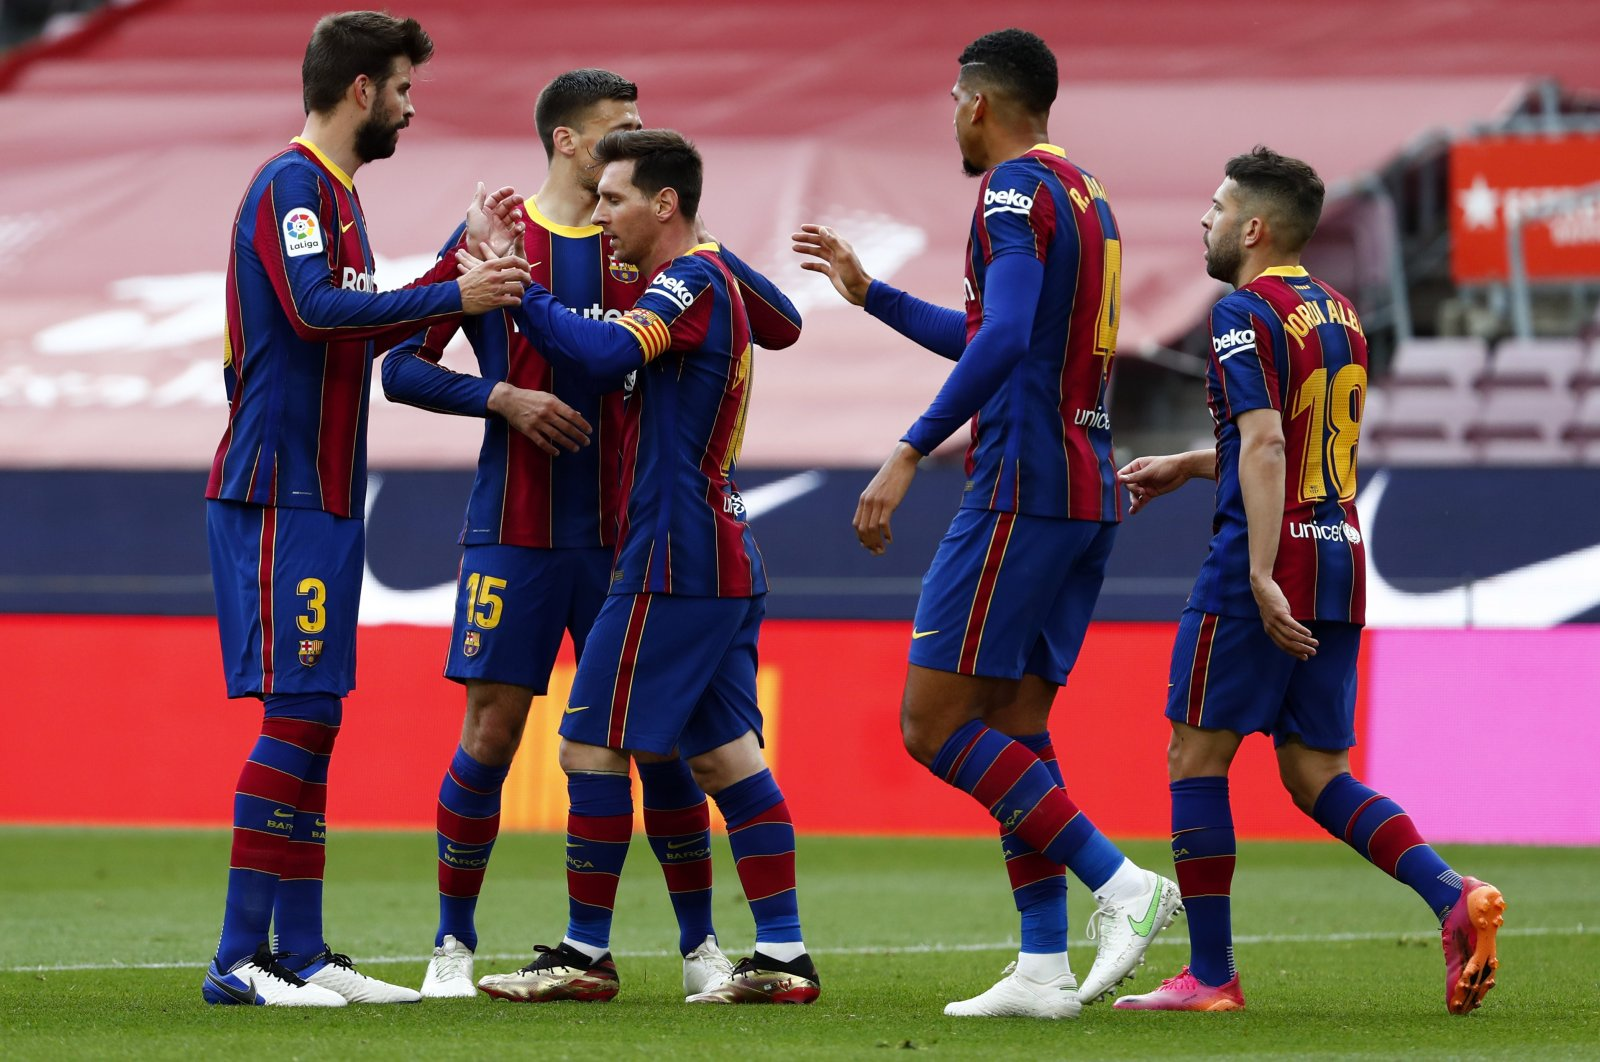 Barcelona's Lionel Messi celebrates with teammates scoring the opening goal during the Spanish La Liga match against Celta at the Camp Nou, Barcelona, Spain, May. 16, 2021. (AP Photo)